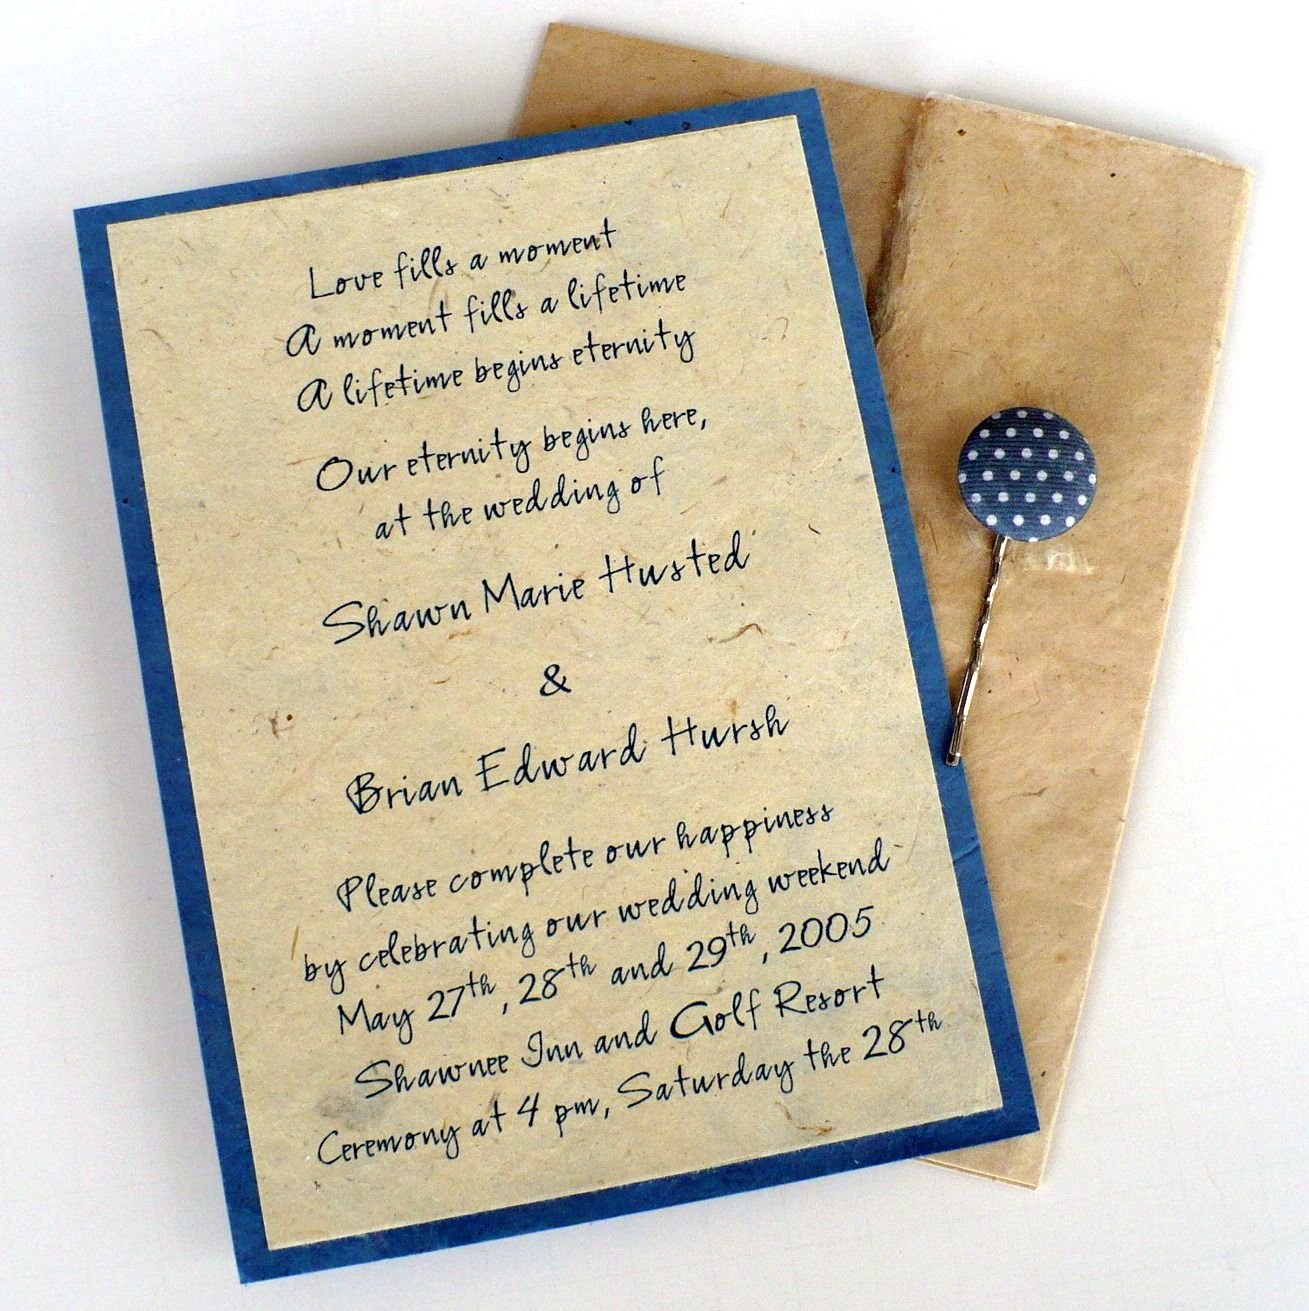 Sun and sand mumbai wedding invitations